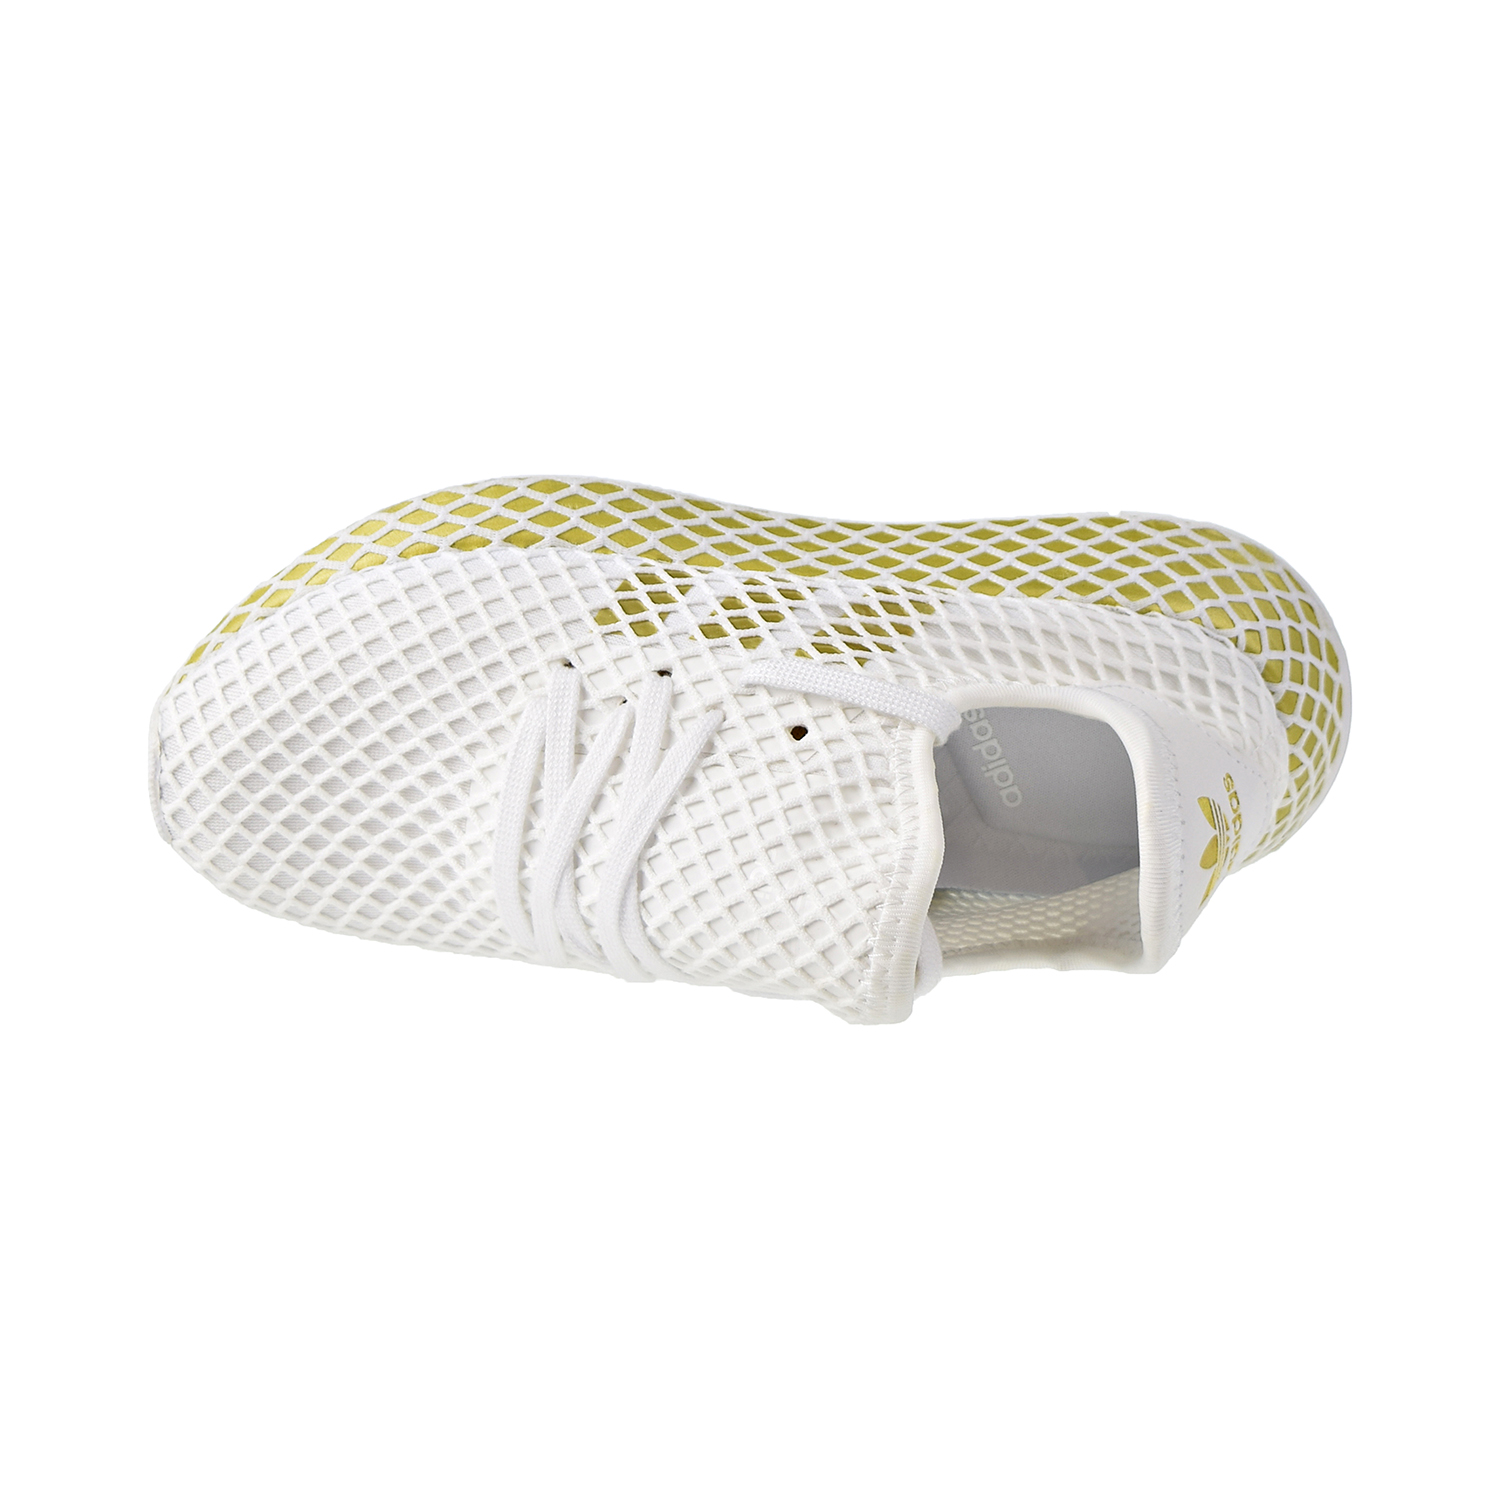 Details about Adidas Deerupt Runner Womens Shoes Footwear White/Gold  Metallic/White CG6087